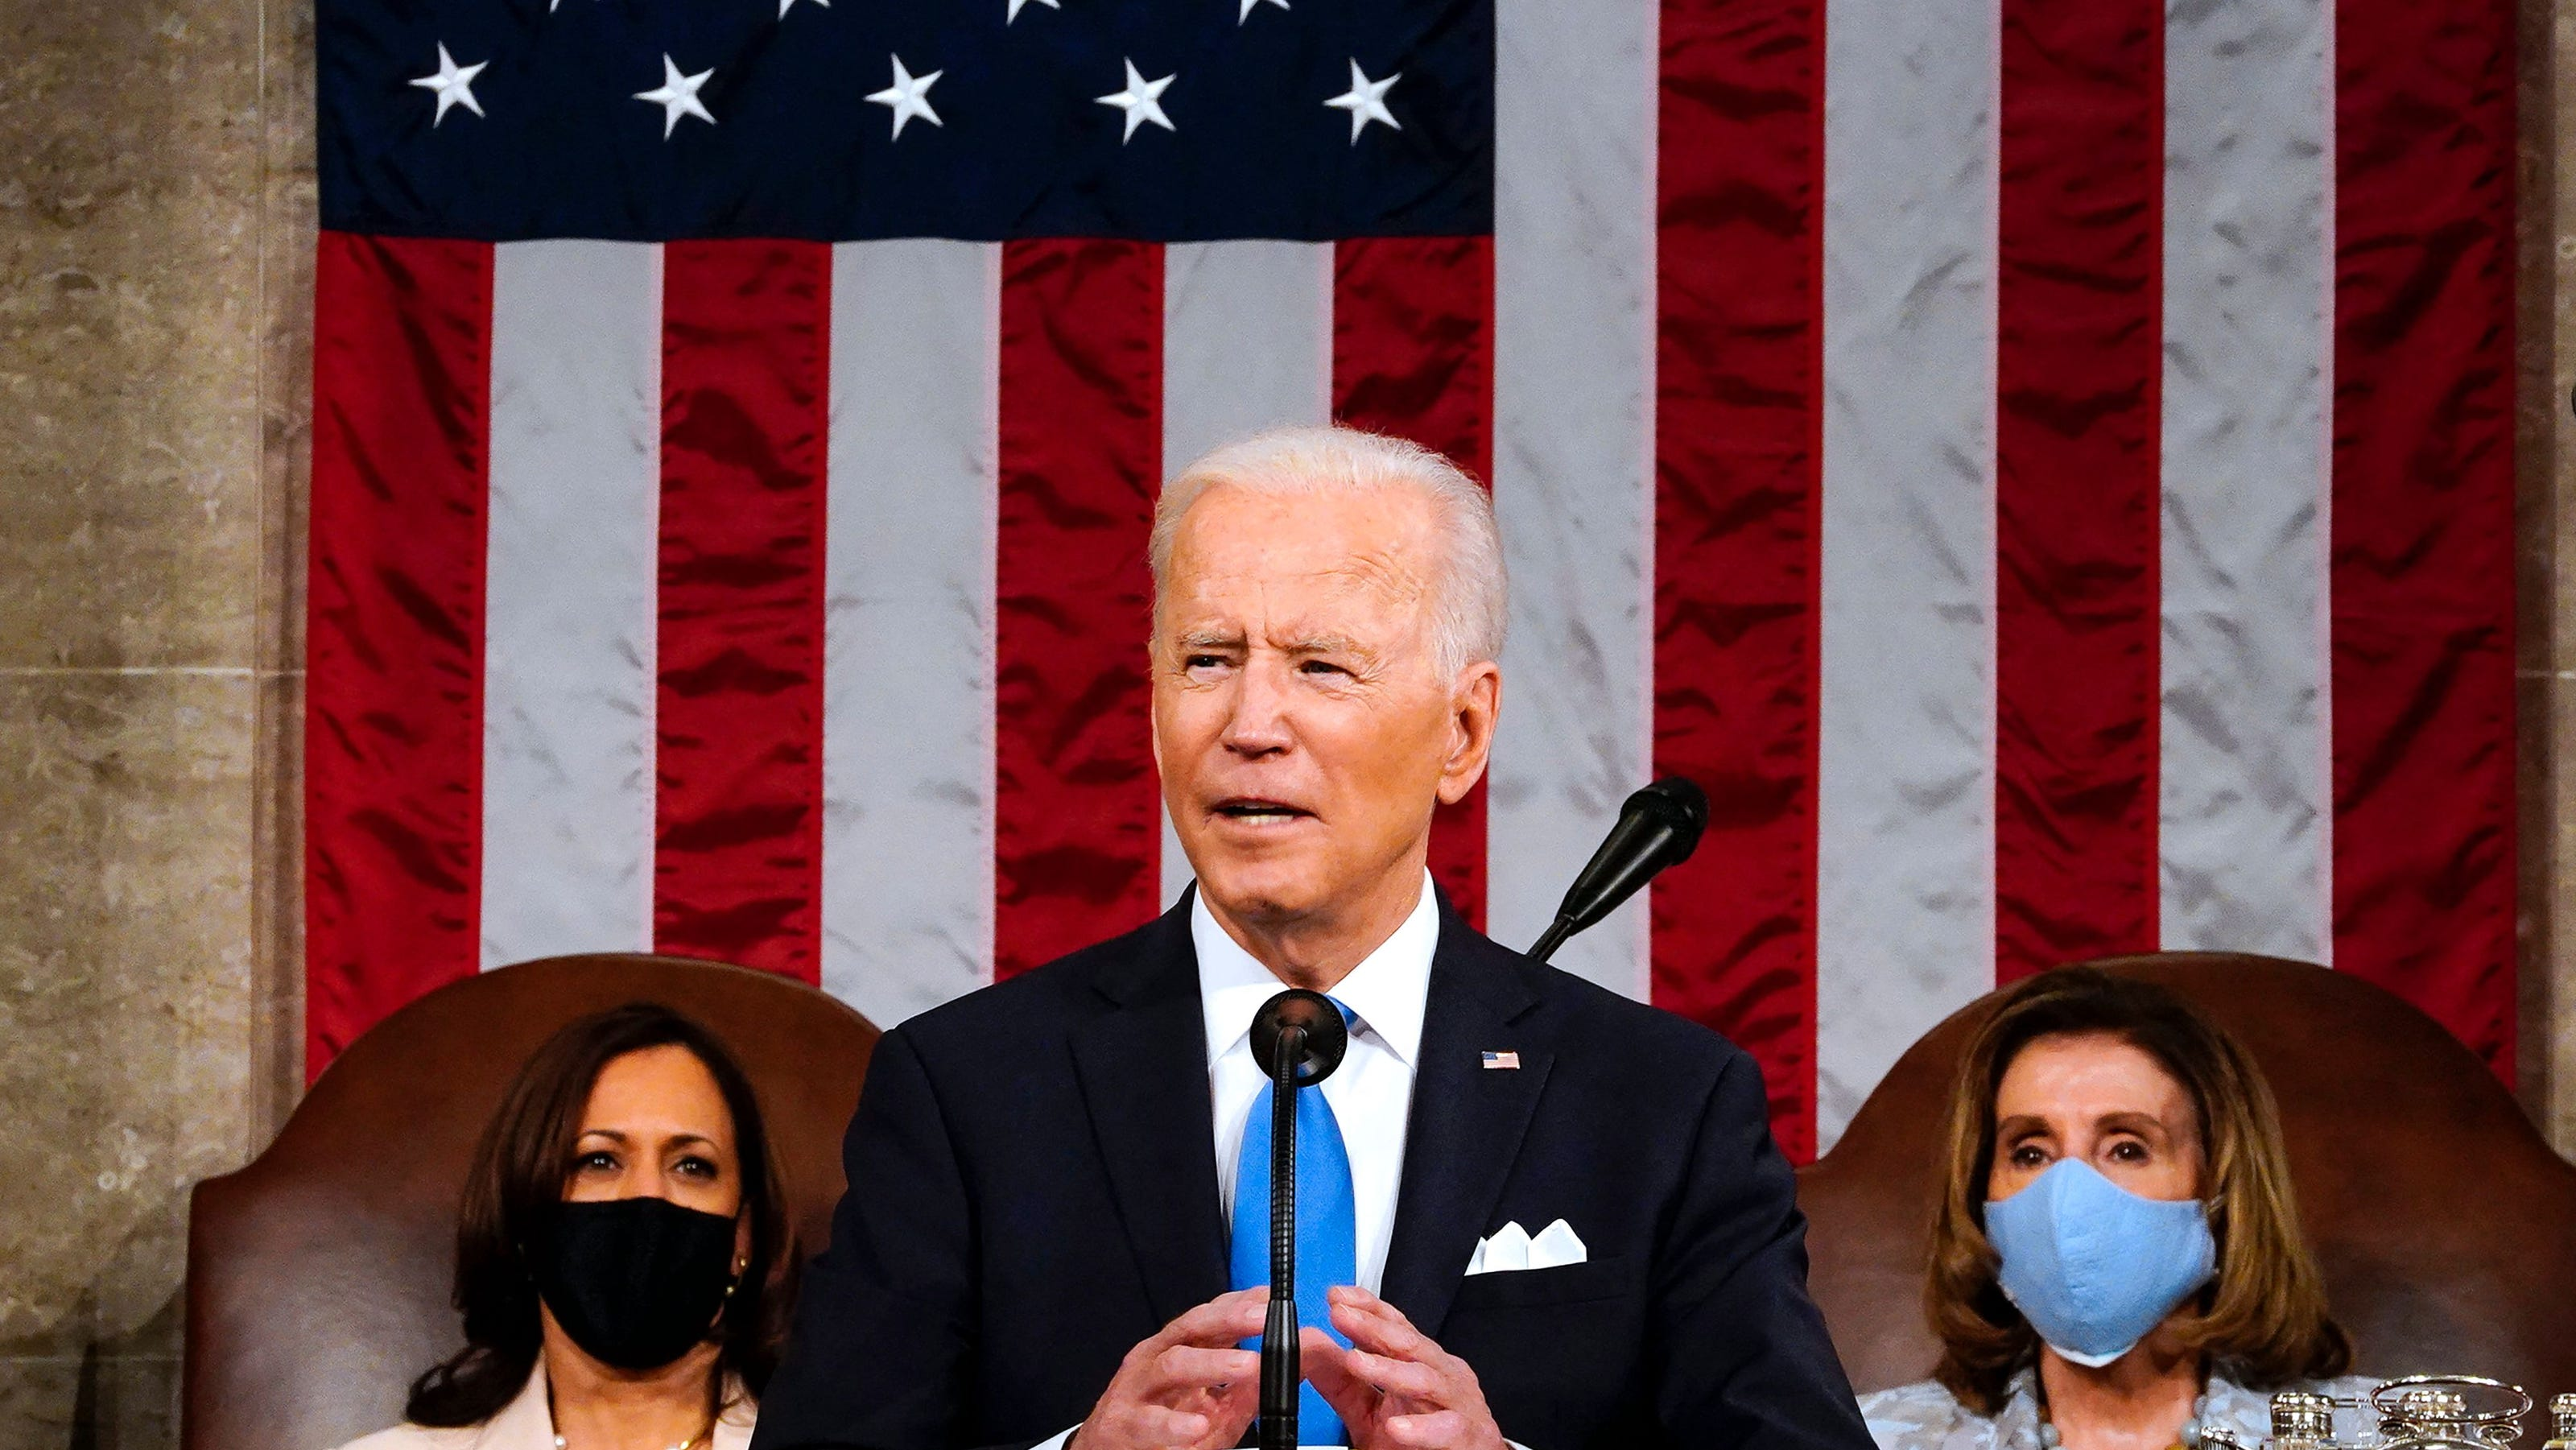 President pushed new jobs, infrastructure, policing initiatives in COVID-era speech to Congress